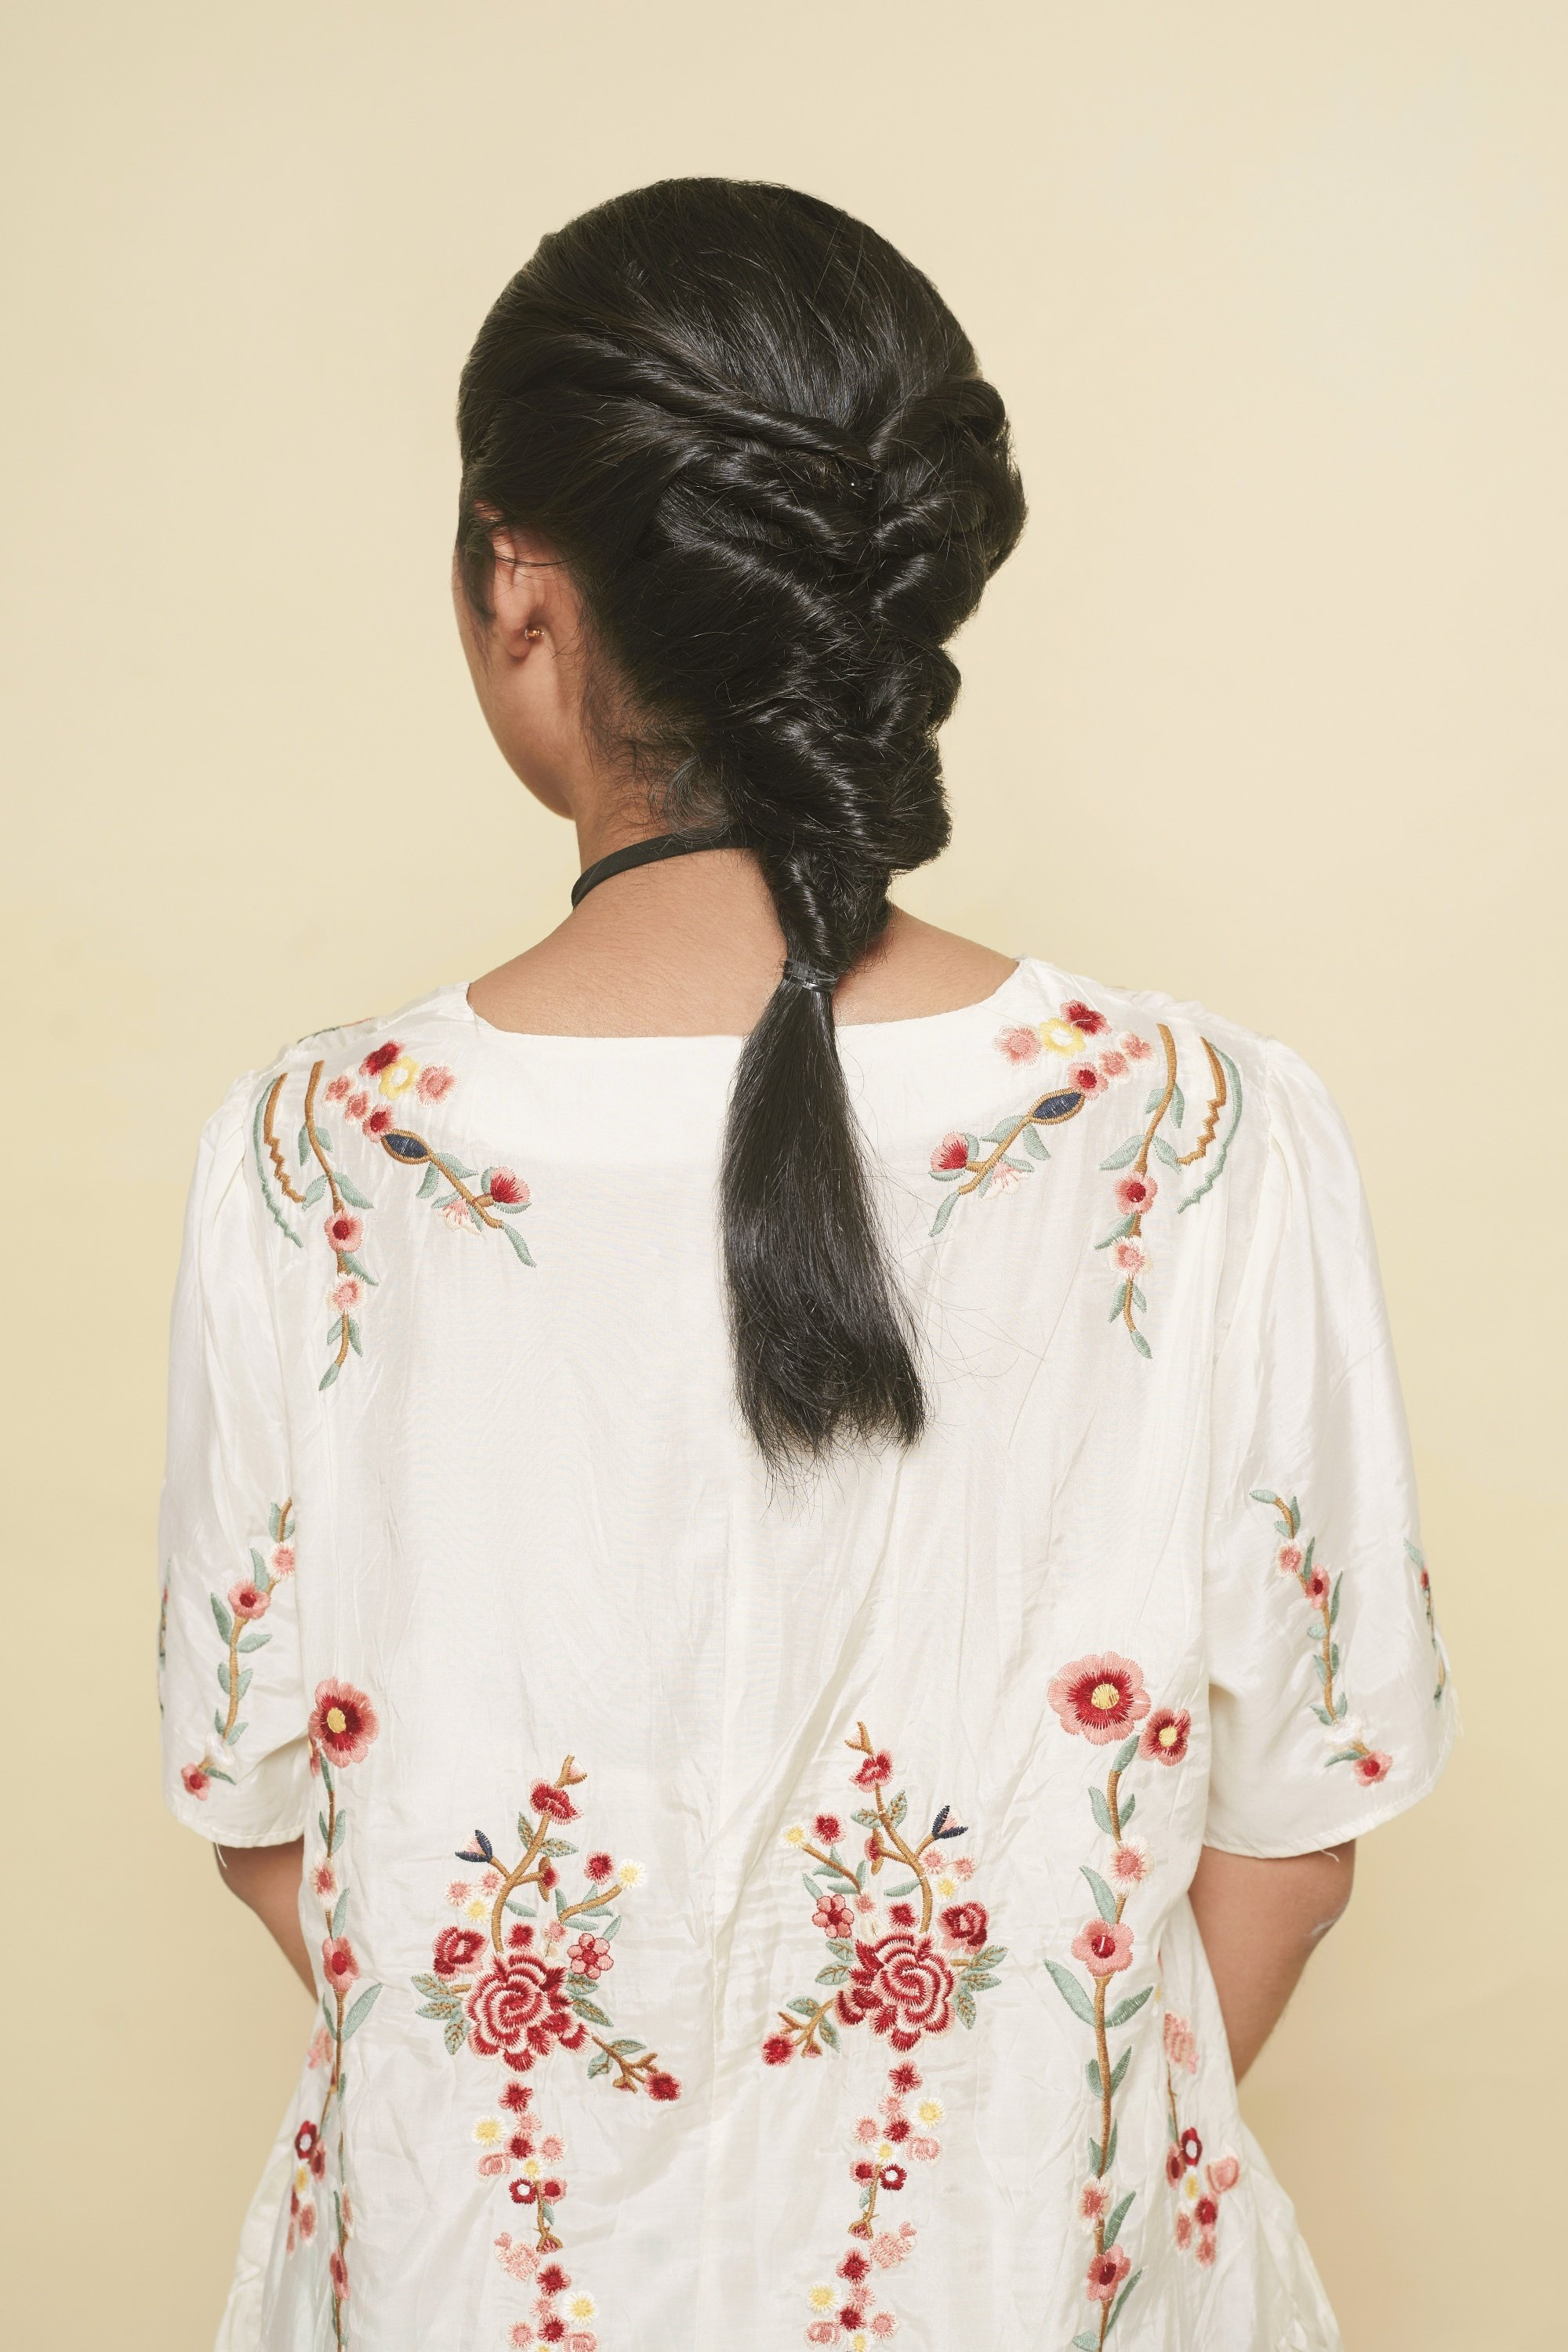 Back shot of an Asian woman with braid hair design for long hair